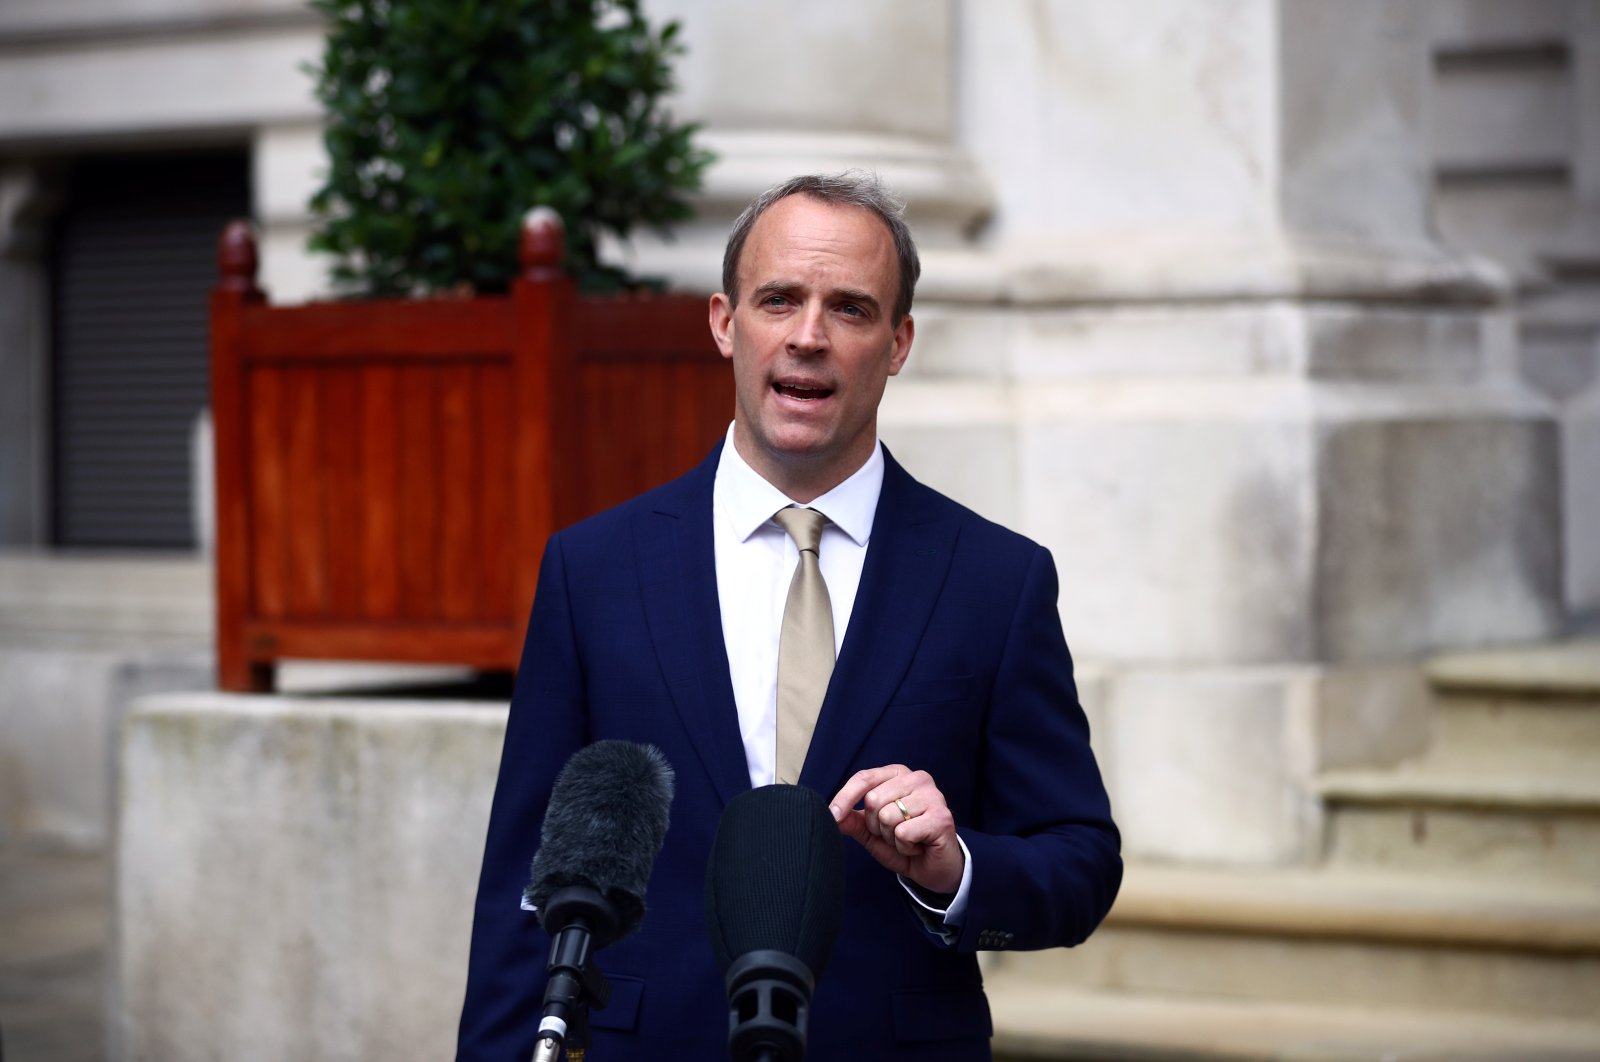 Britain's Foreign Secretary Dominic Raab makes a statement on Hong Kong's national security legislation in London, Britain, July 1, 2020. (Reuters Photo)